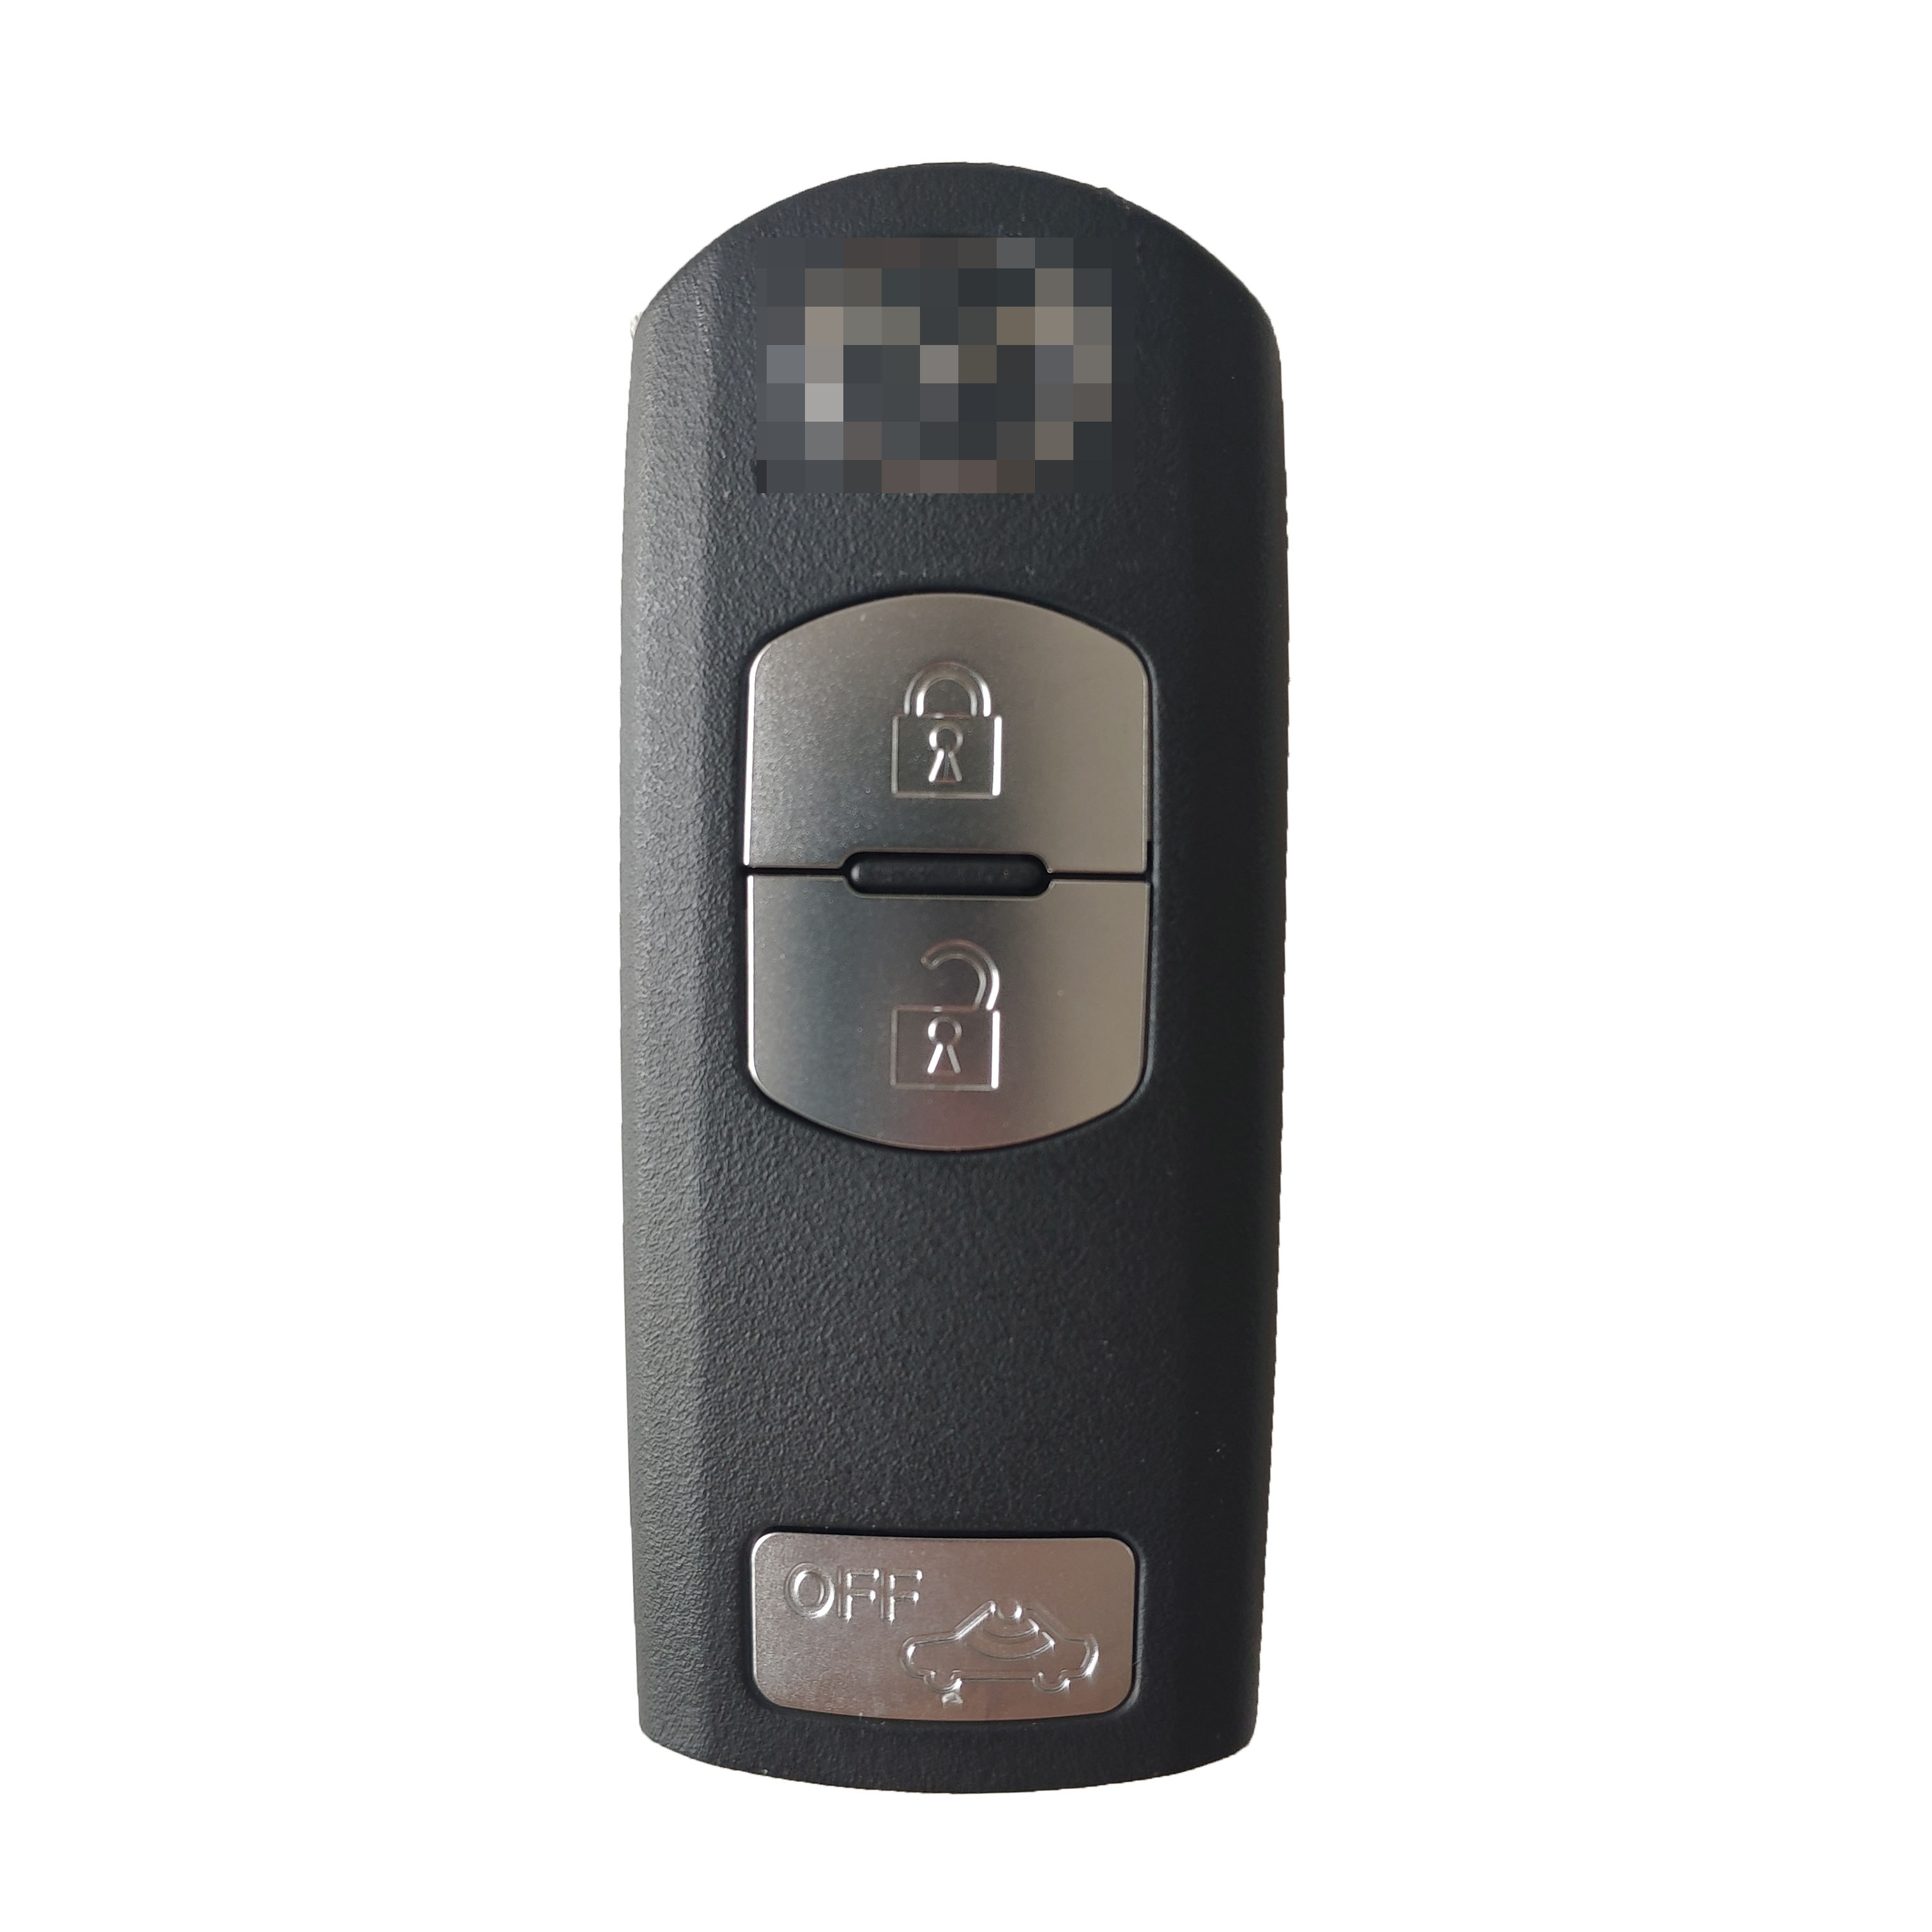 Original 3 Buttons 434 MHz Smart Proximity Key For Mazda SKE13E-01 - Thailand Version - ID49